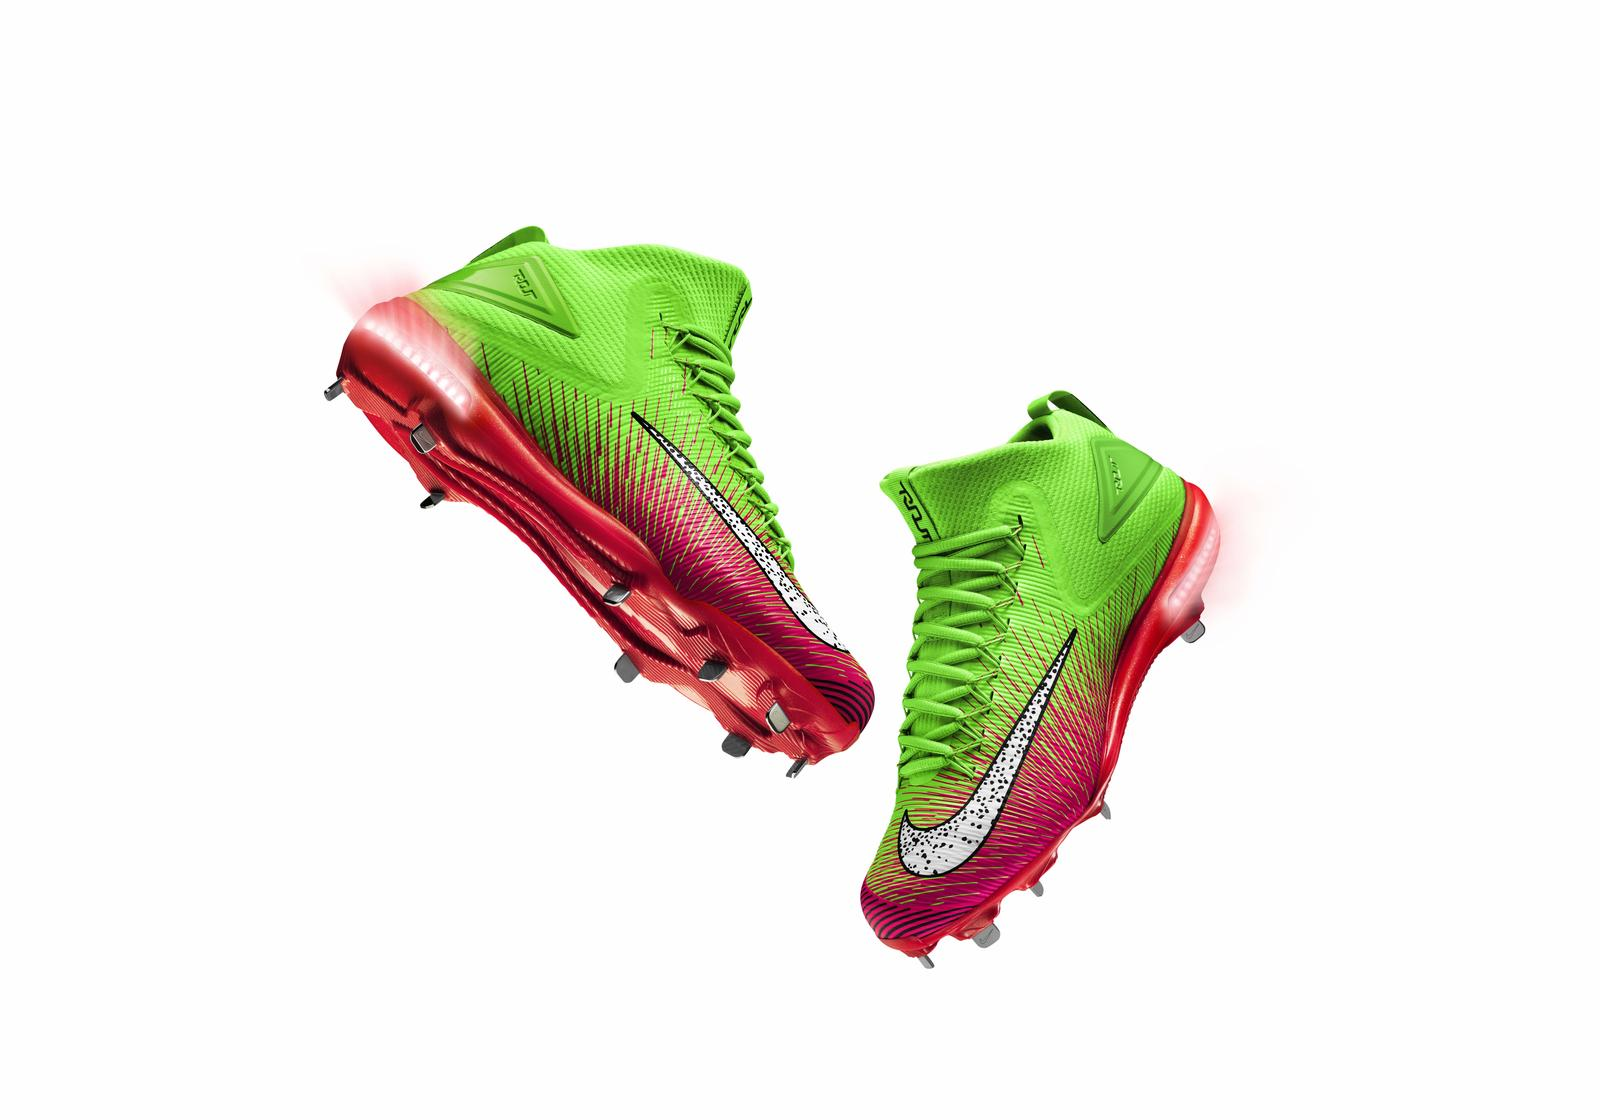 The Nike Zoom Trout 3 - Nike News